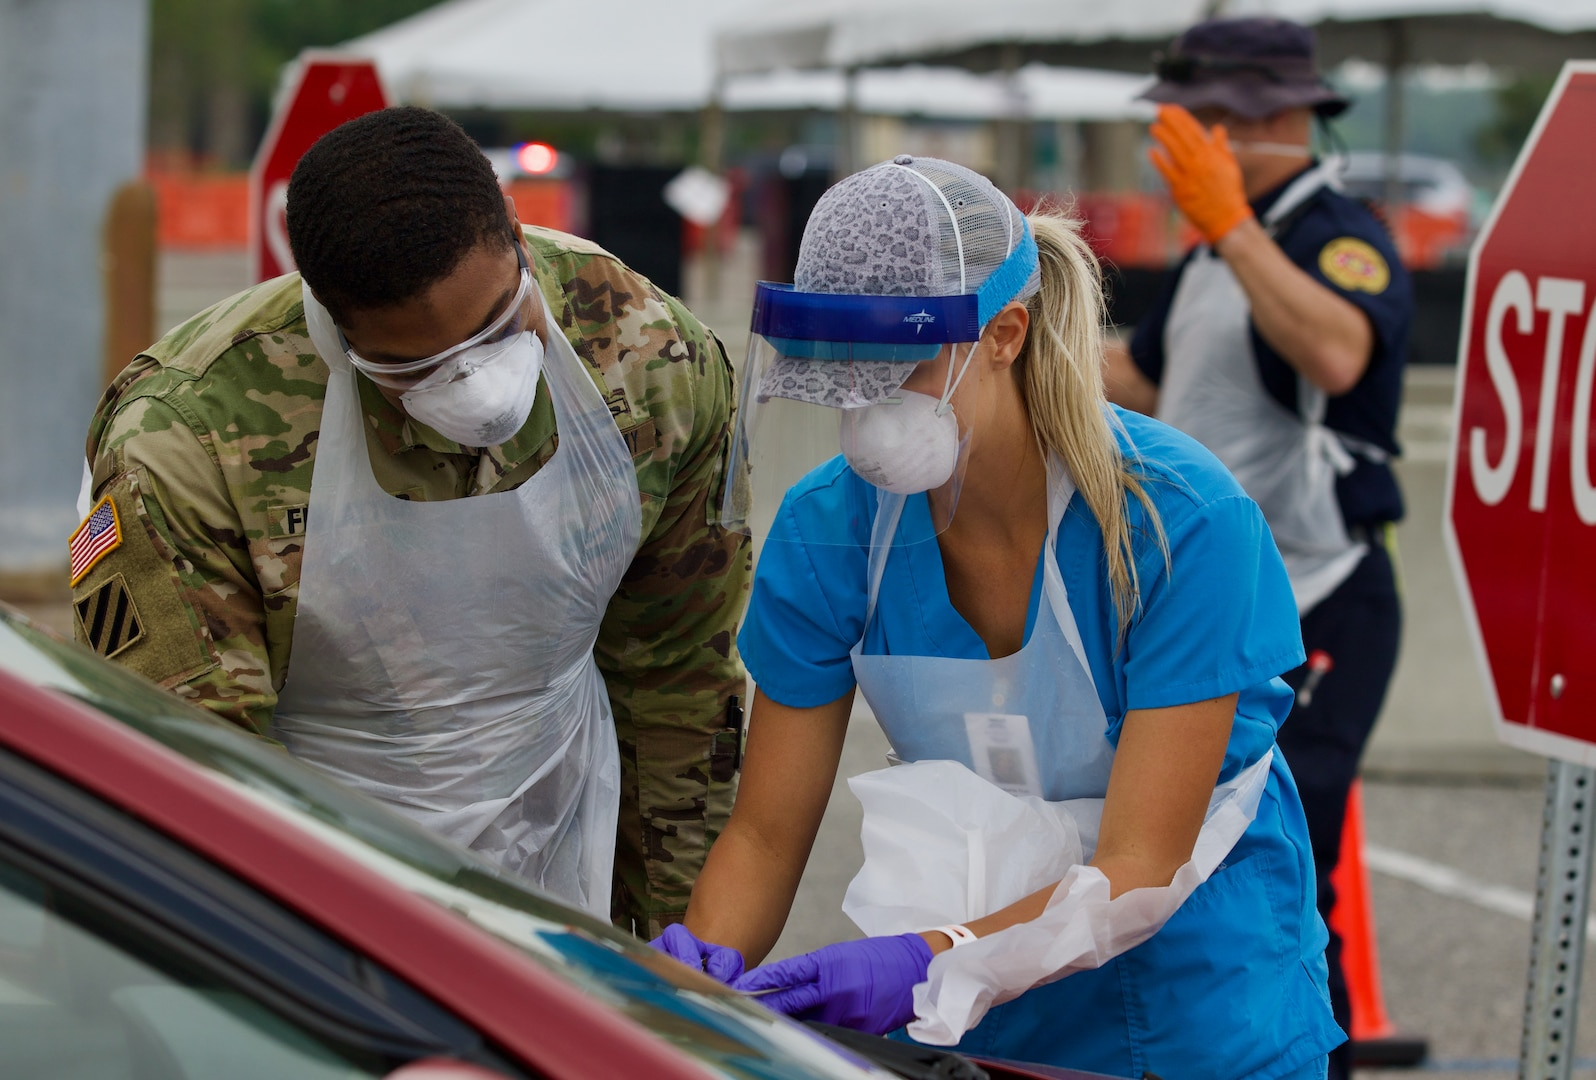 A Florida National Guard Soldier works alongside a nurse as he learns the processes at Jacksonville's COVID-19 community-based testing site at TIAA Bank Field, April 13, 2020. The FLNG's 3rd Battalion of the 20th Special Forces Group (Airborne) is taking over operation of the site.